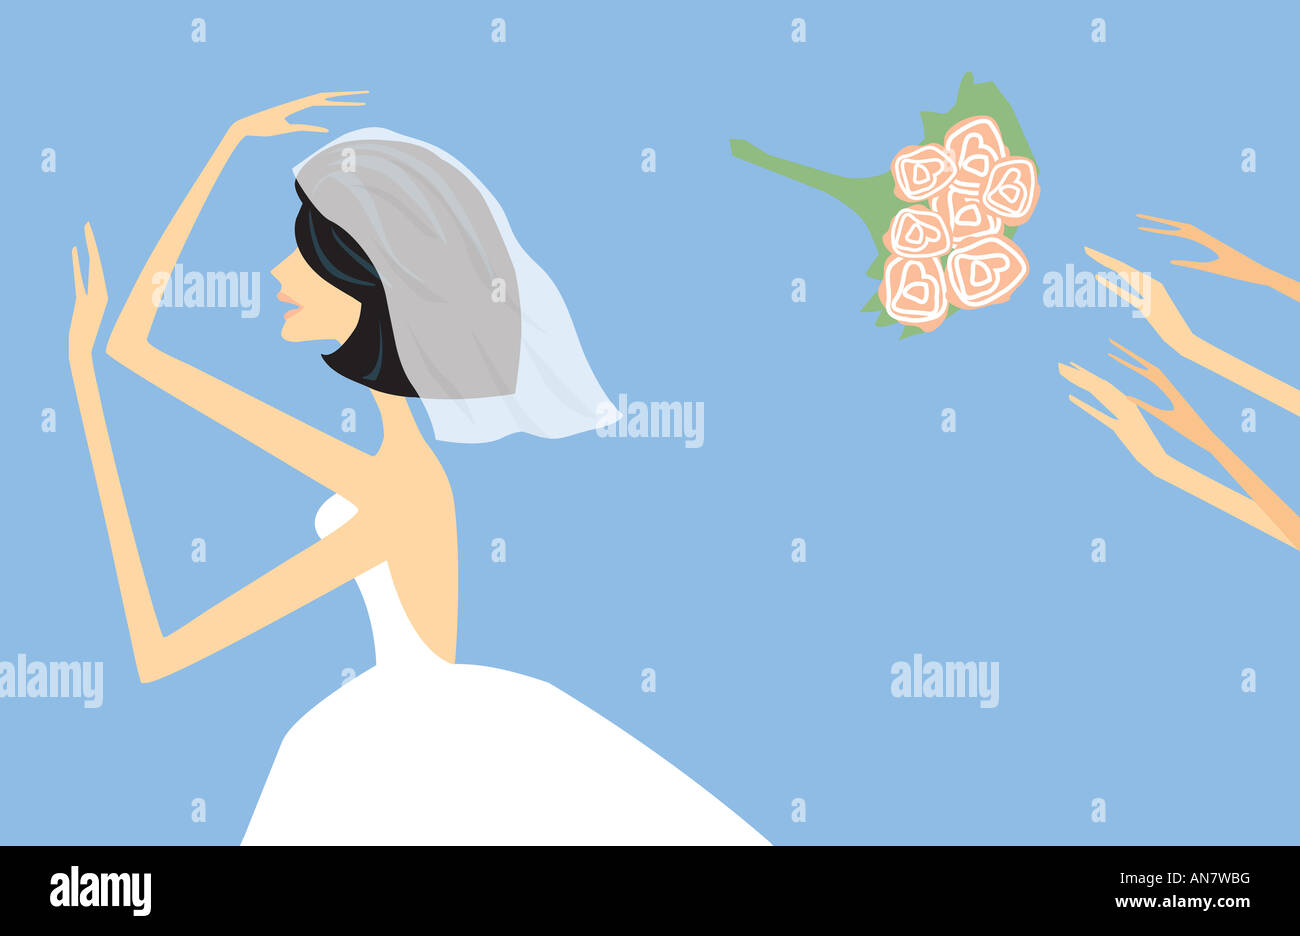 Attraper le bridal bouquet de mariage - Illustration Photo Stock